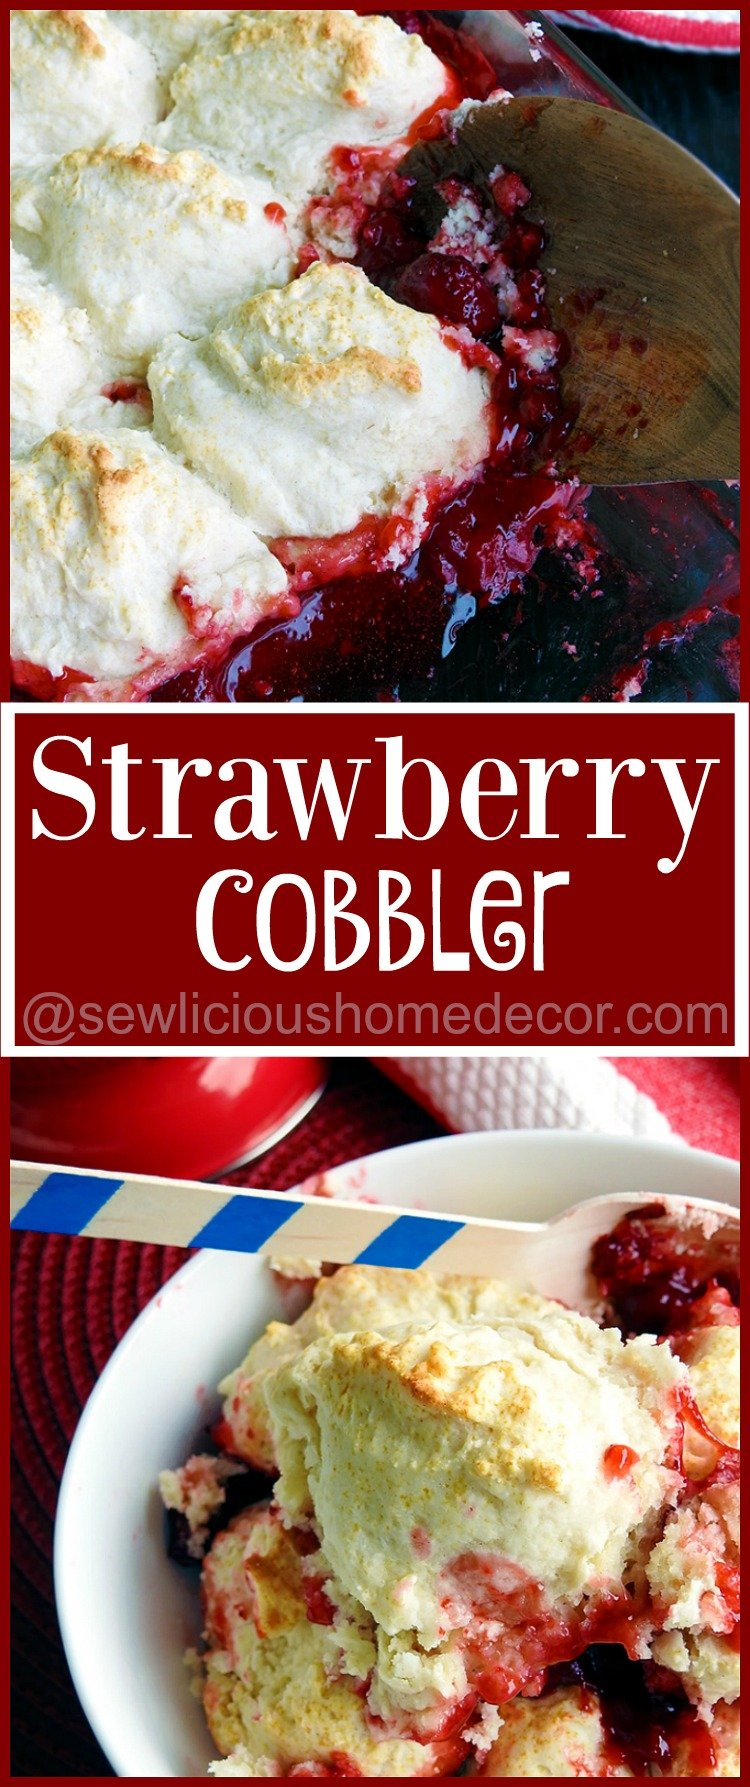 The best Strawberry Cobbler for summertime. sewlicioushomedecor